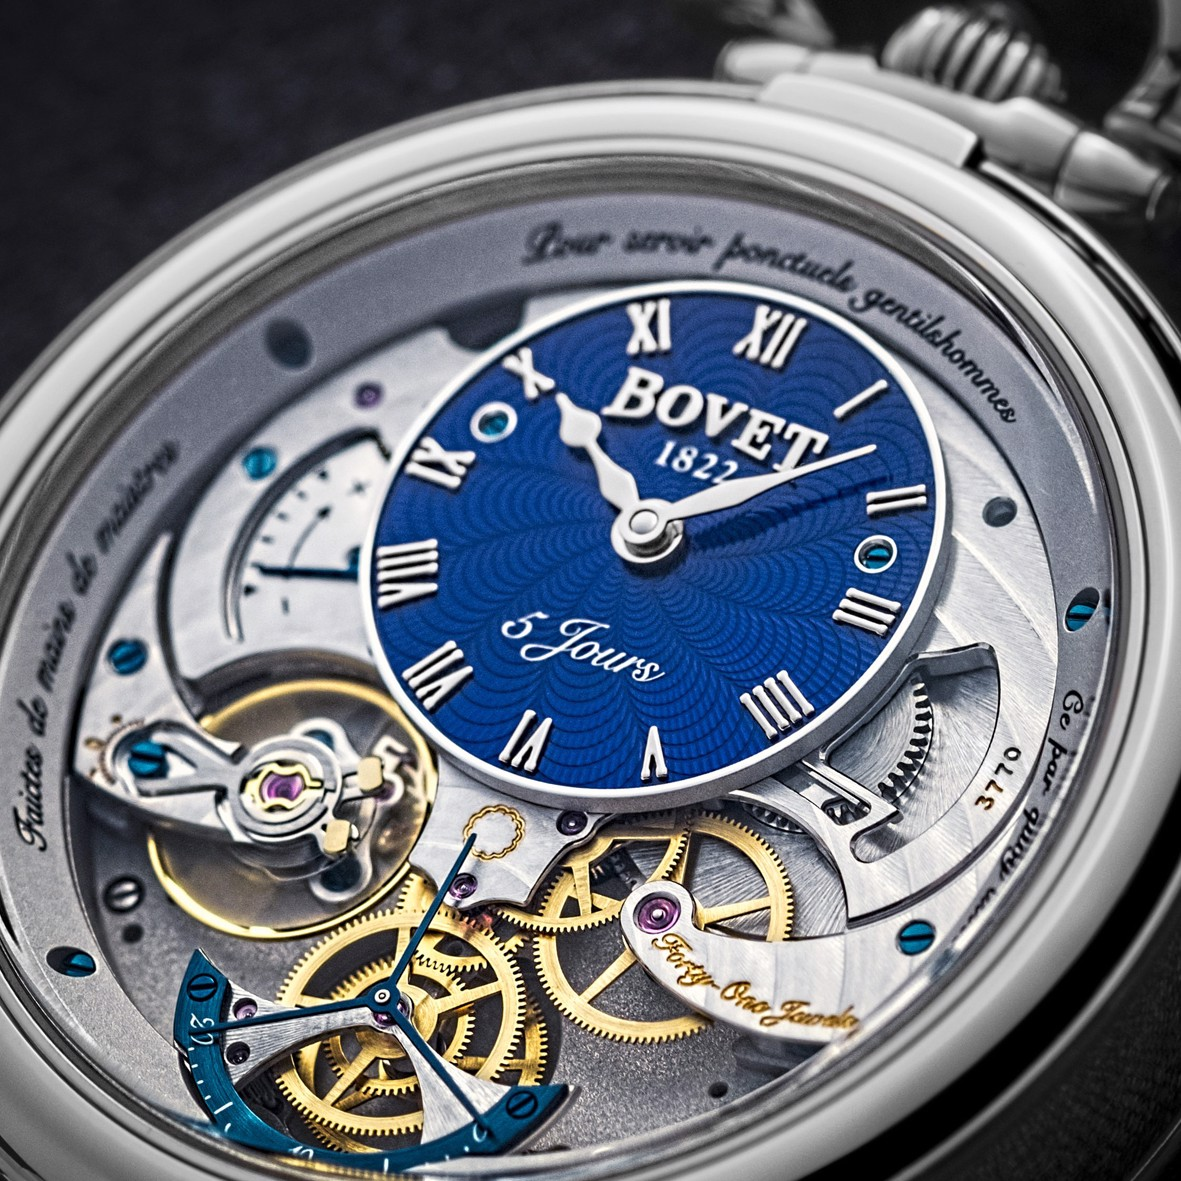 Bovet Fleurier Complications Virtuoso V White Gold Blue guilloché Dial